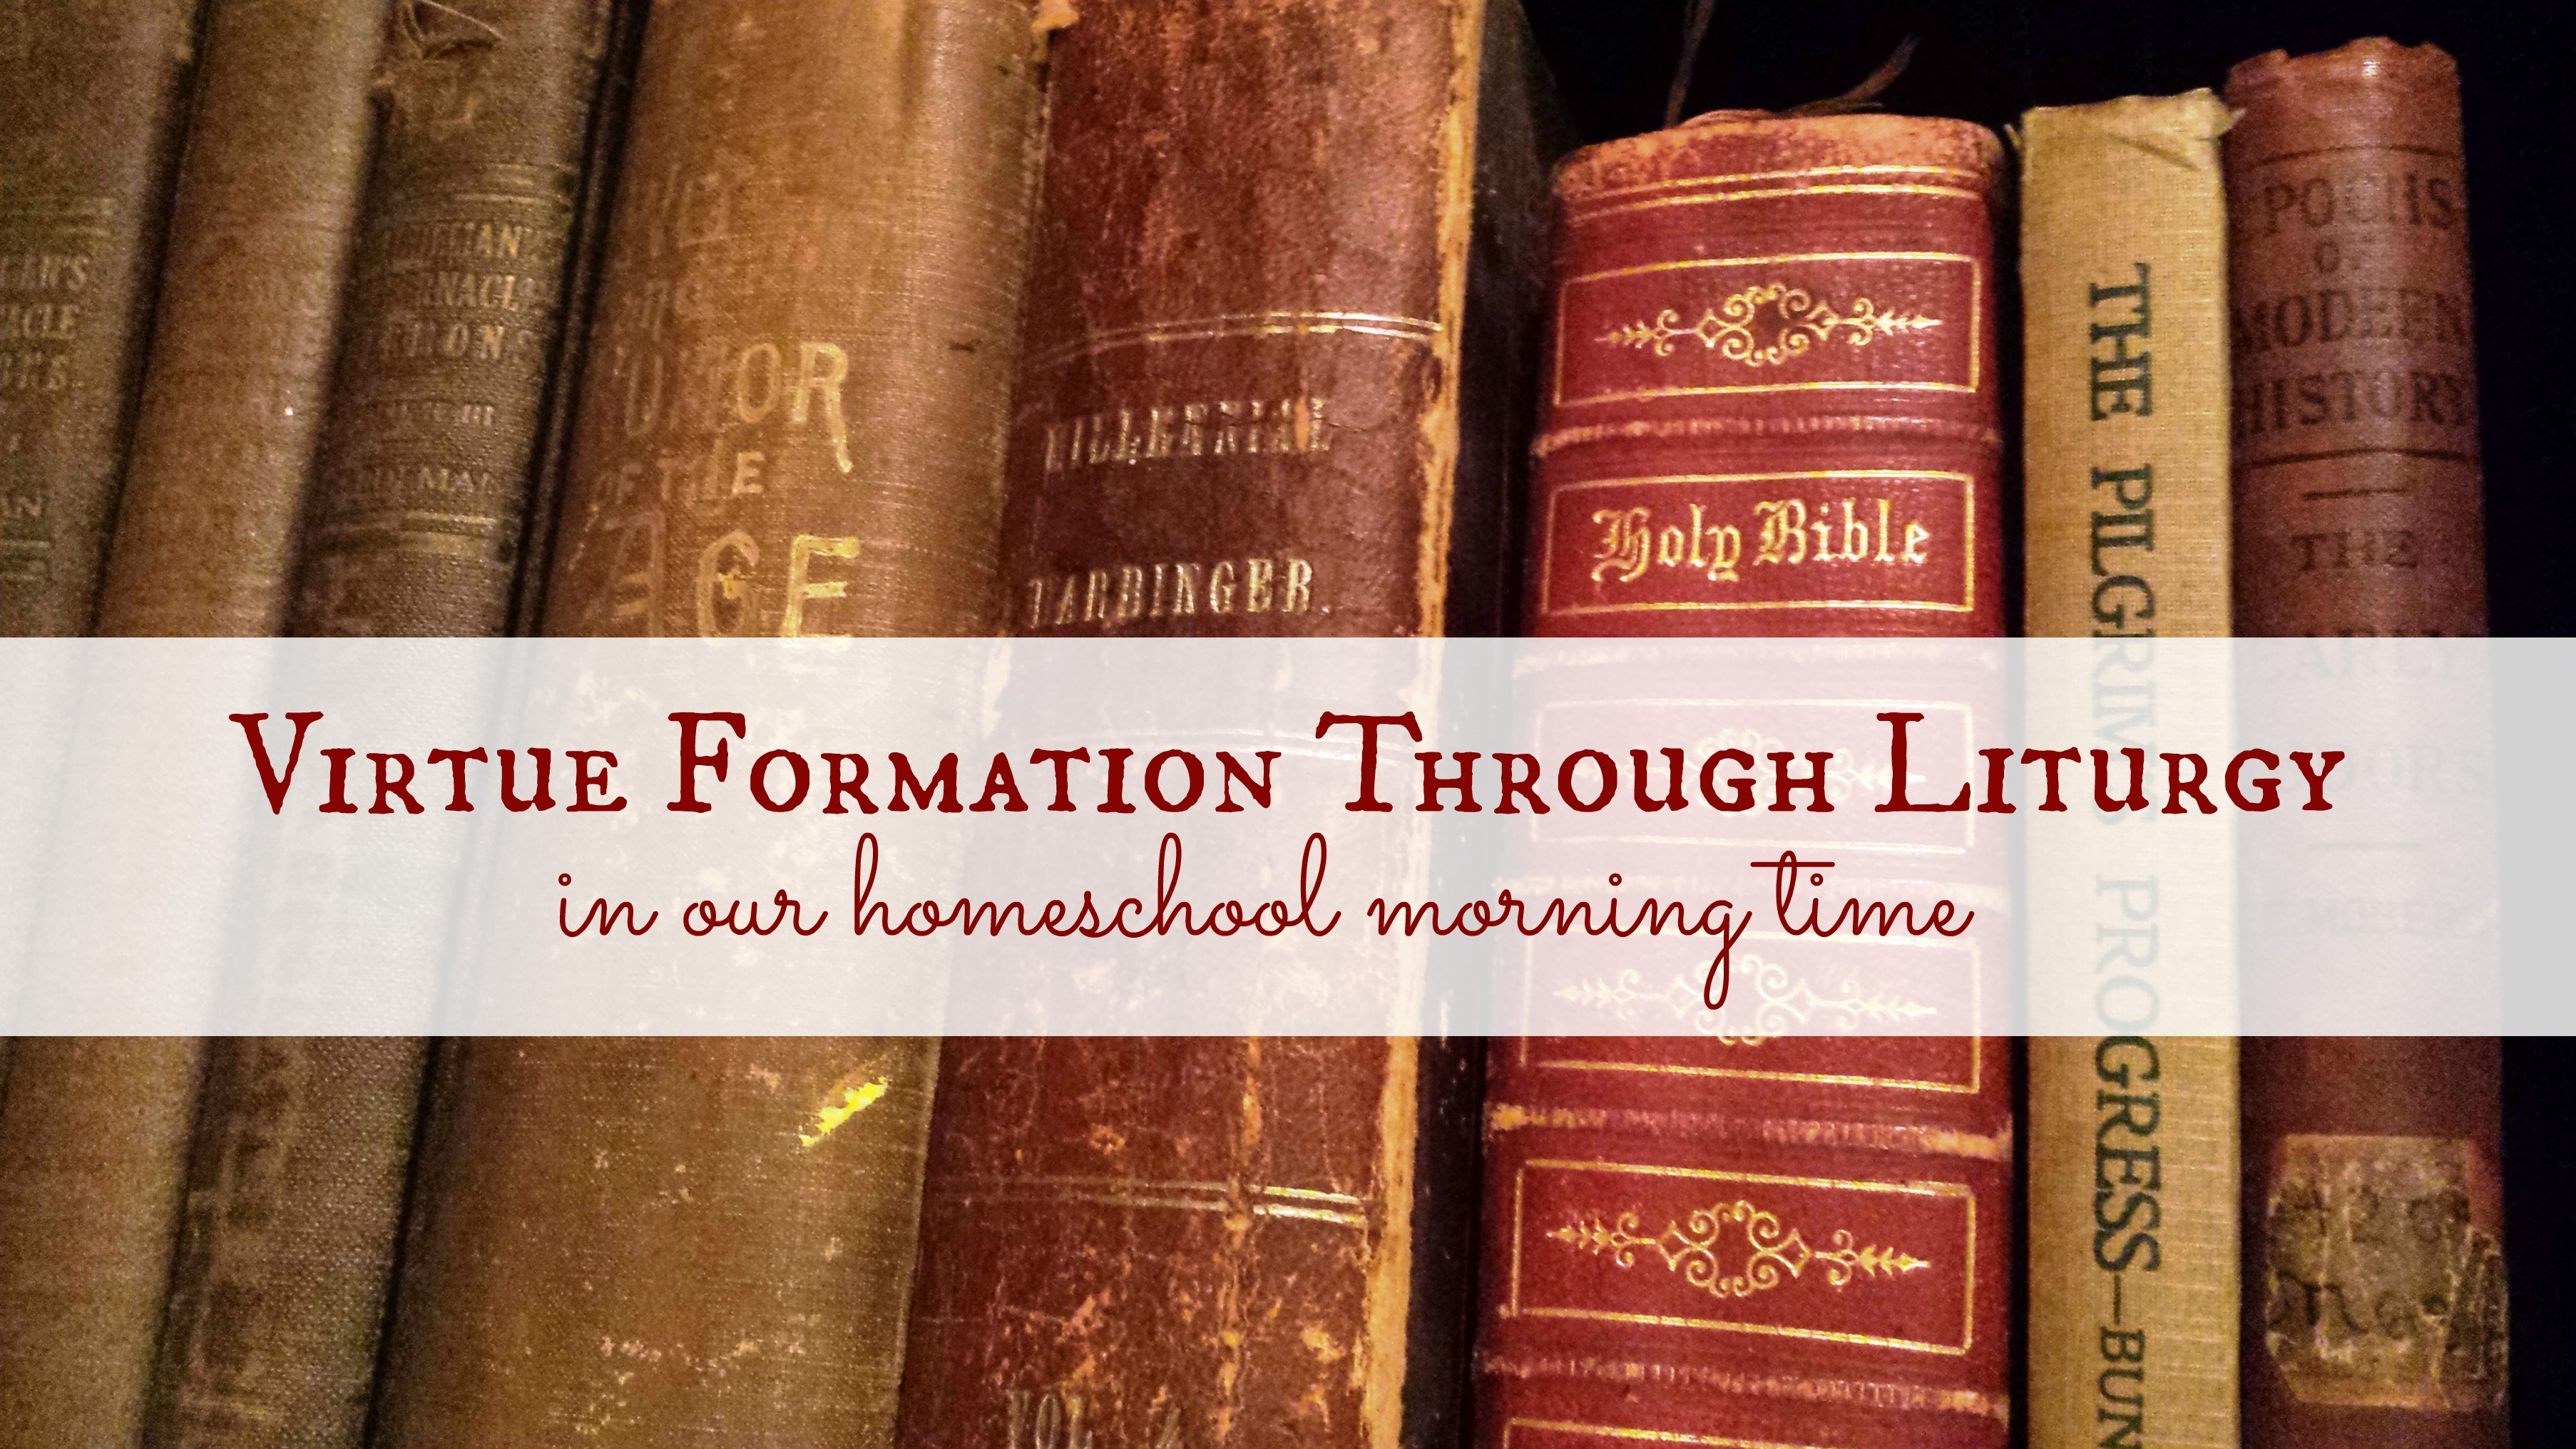 Virtue Formation Through Liturgy in Our Homeschool Morning Time